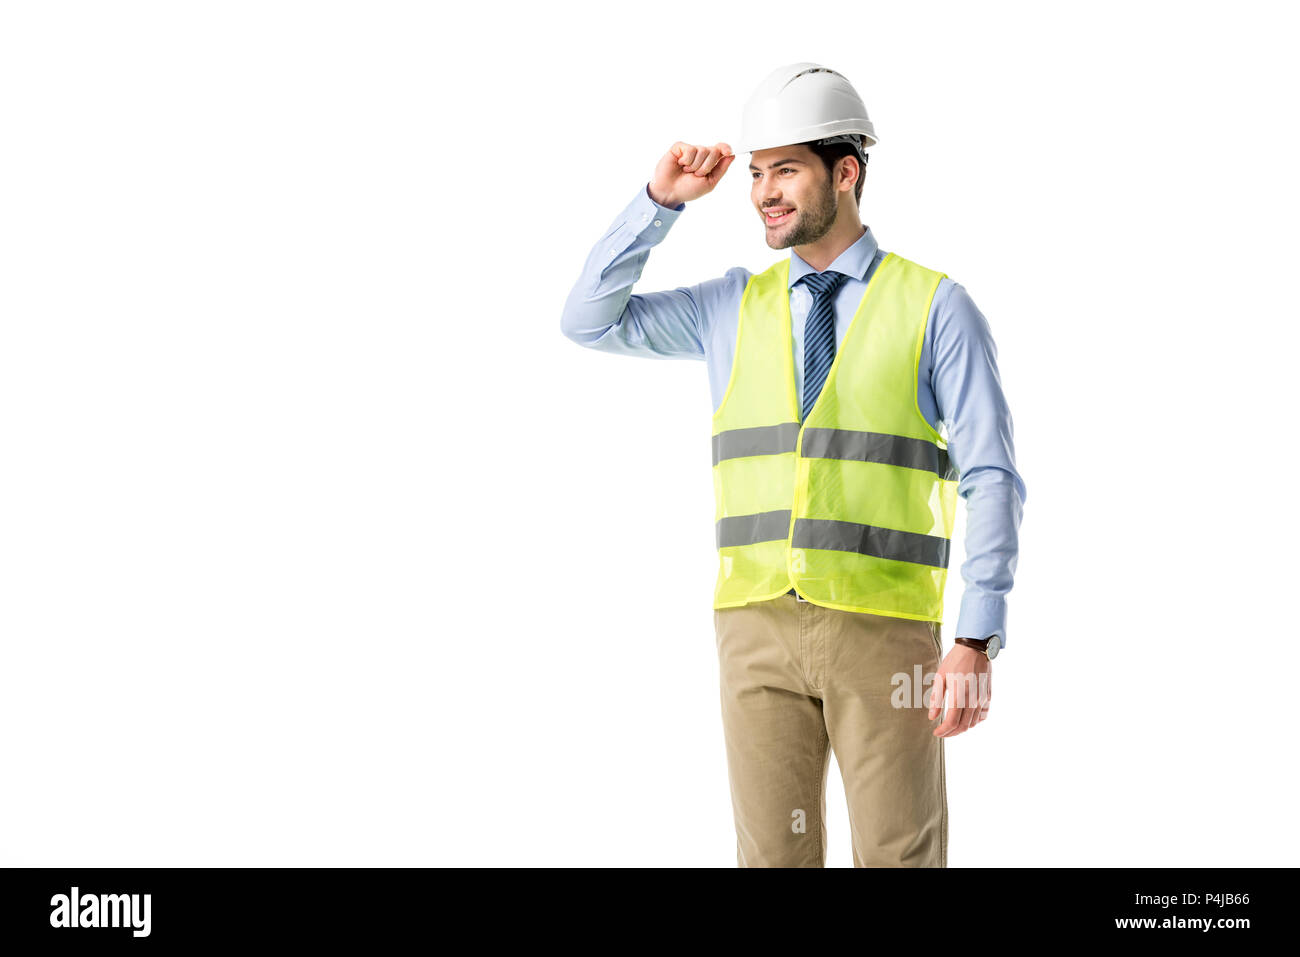 Smiling builder in reflective vest wearing helmet isolated on white - Stock Image